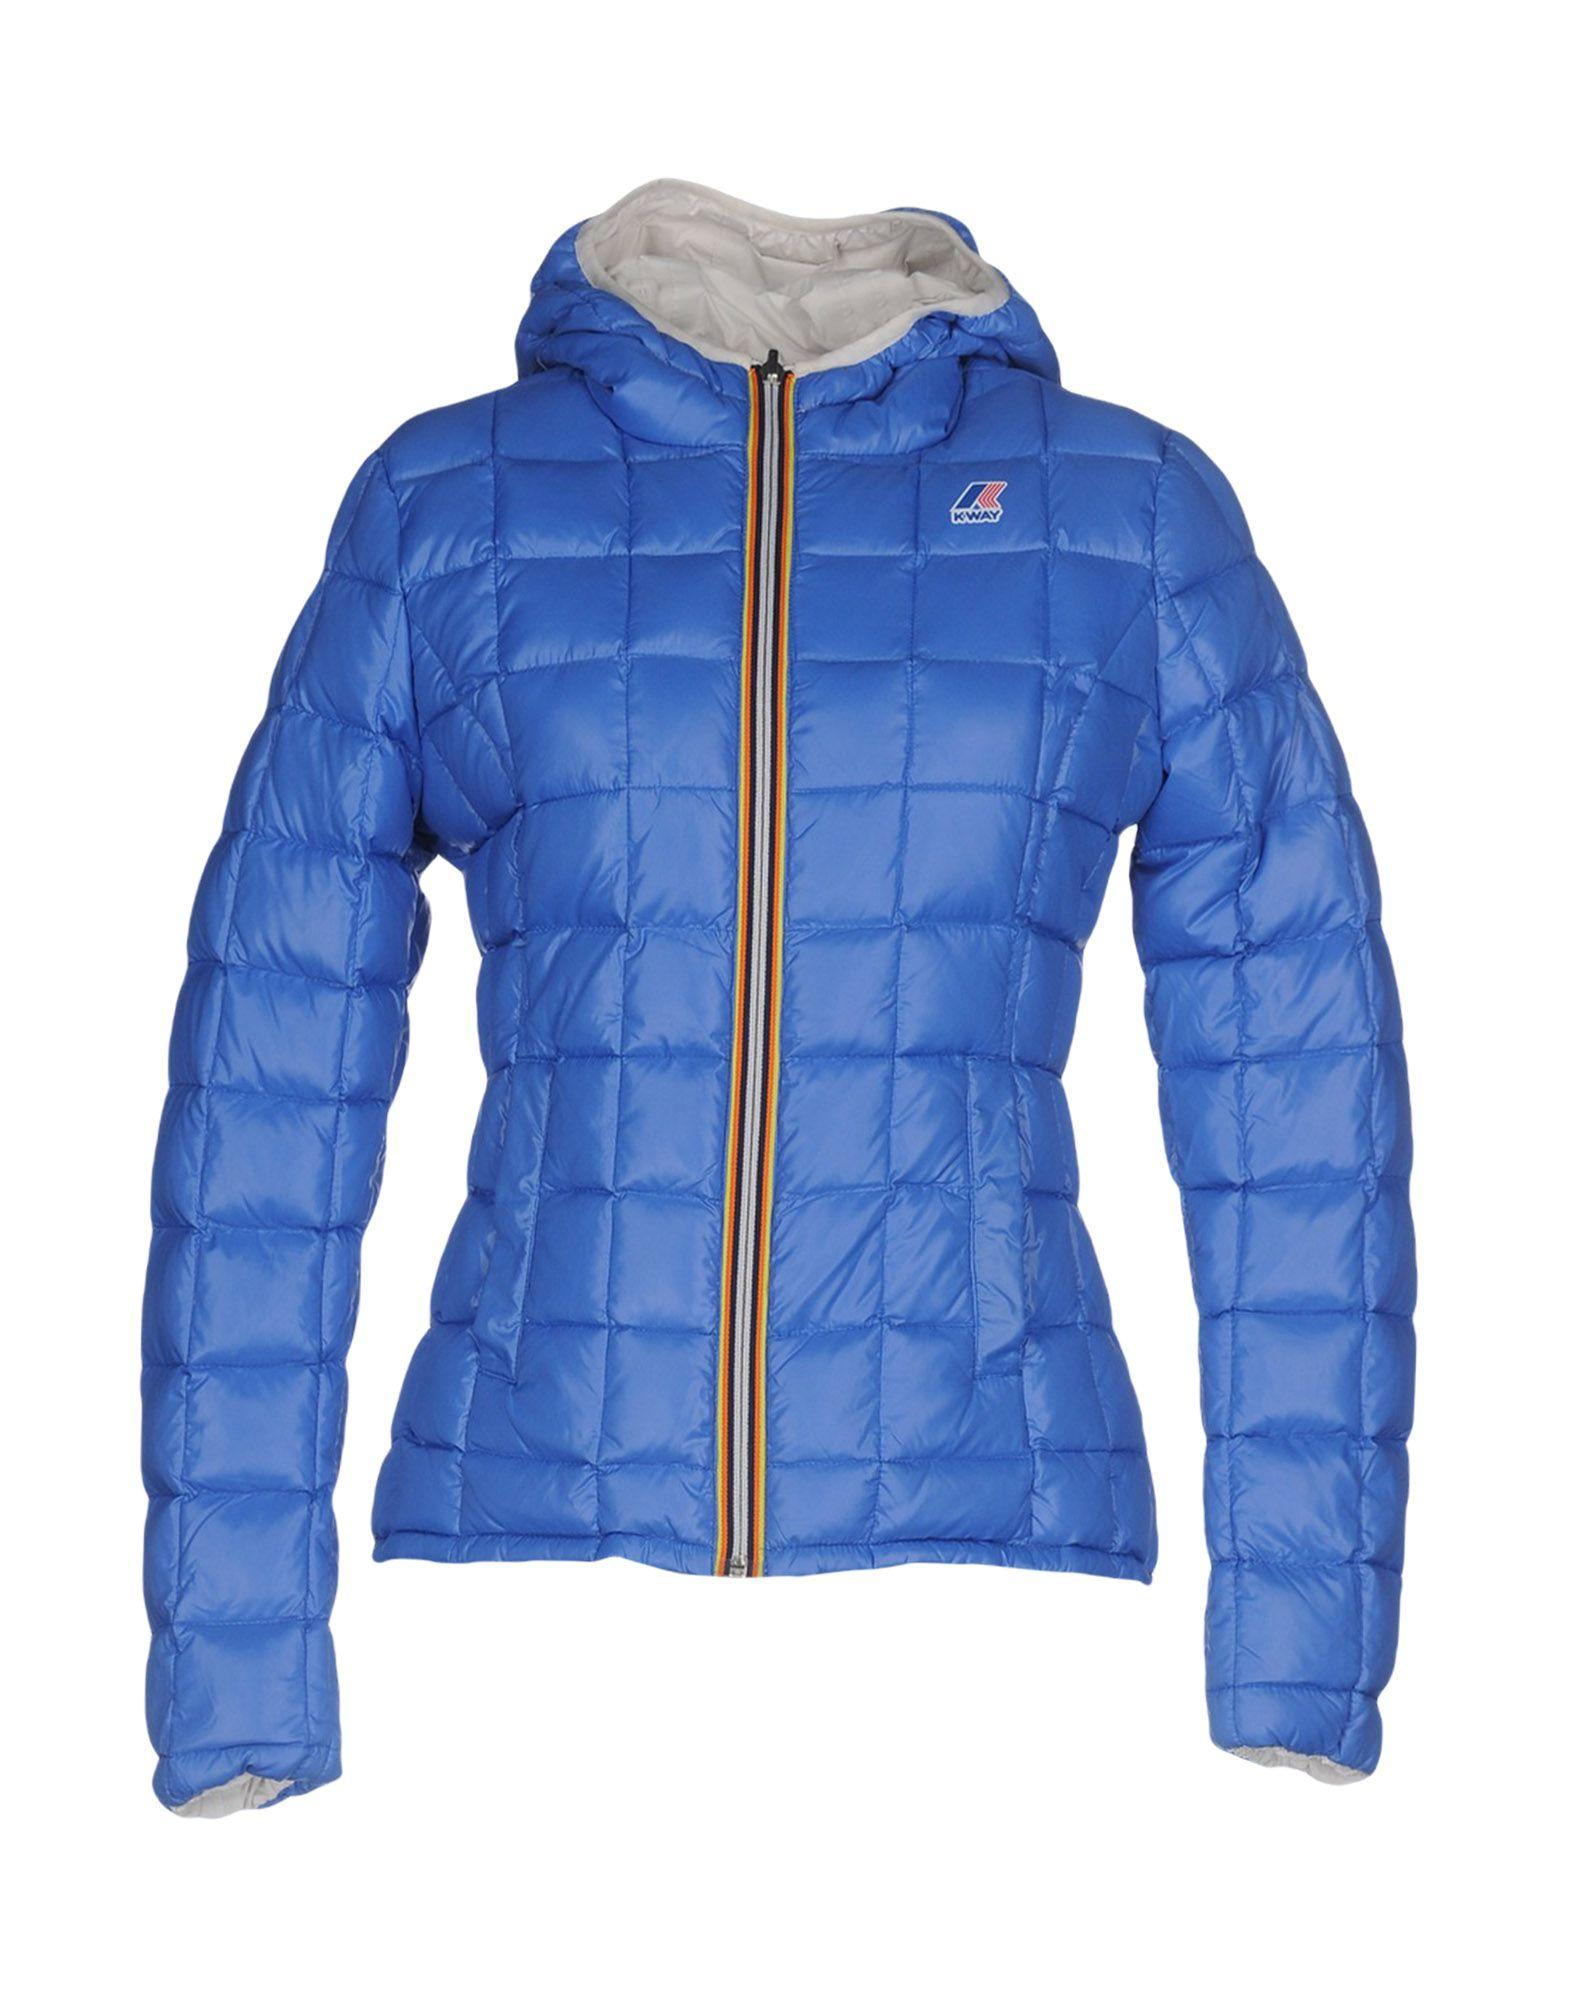 K-way Down Jackets In Azure